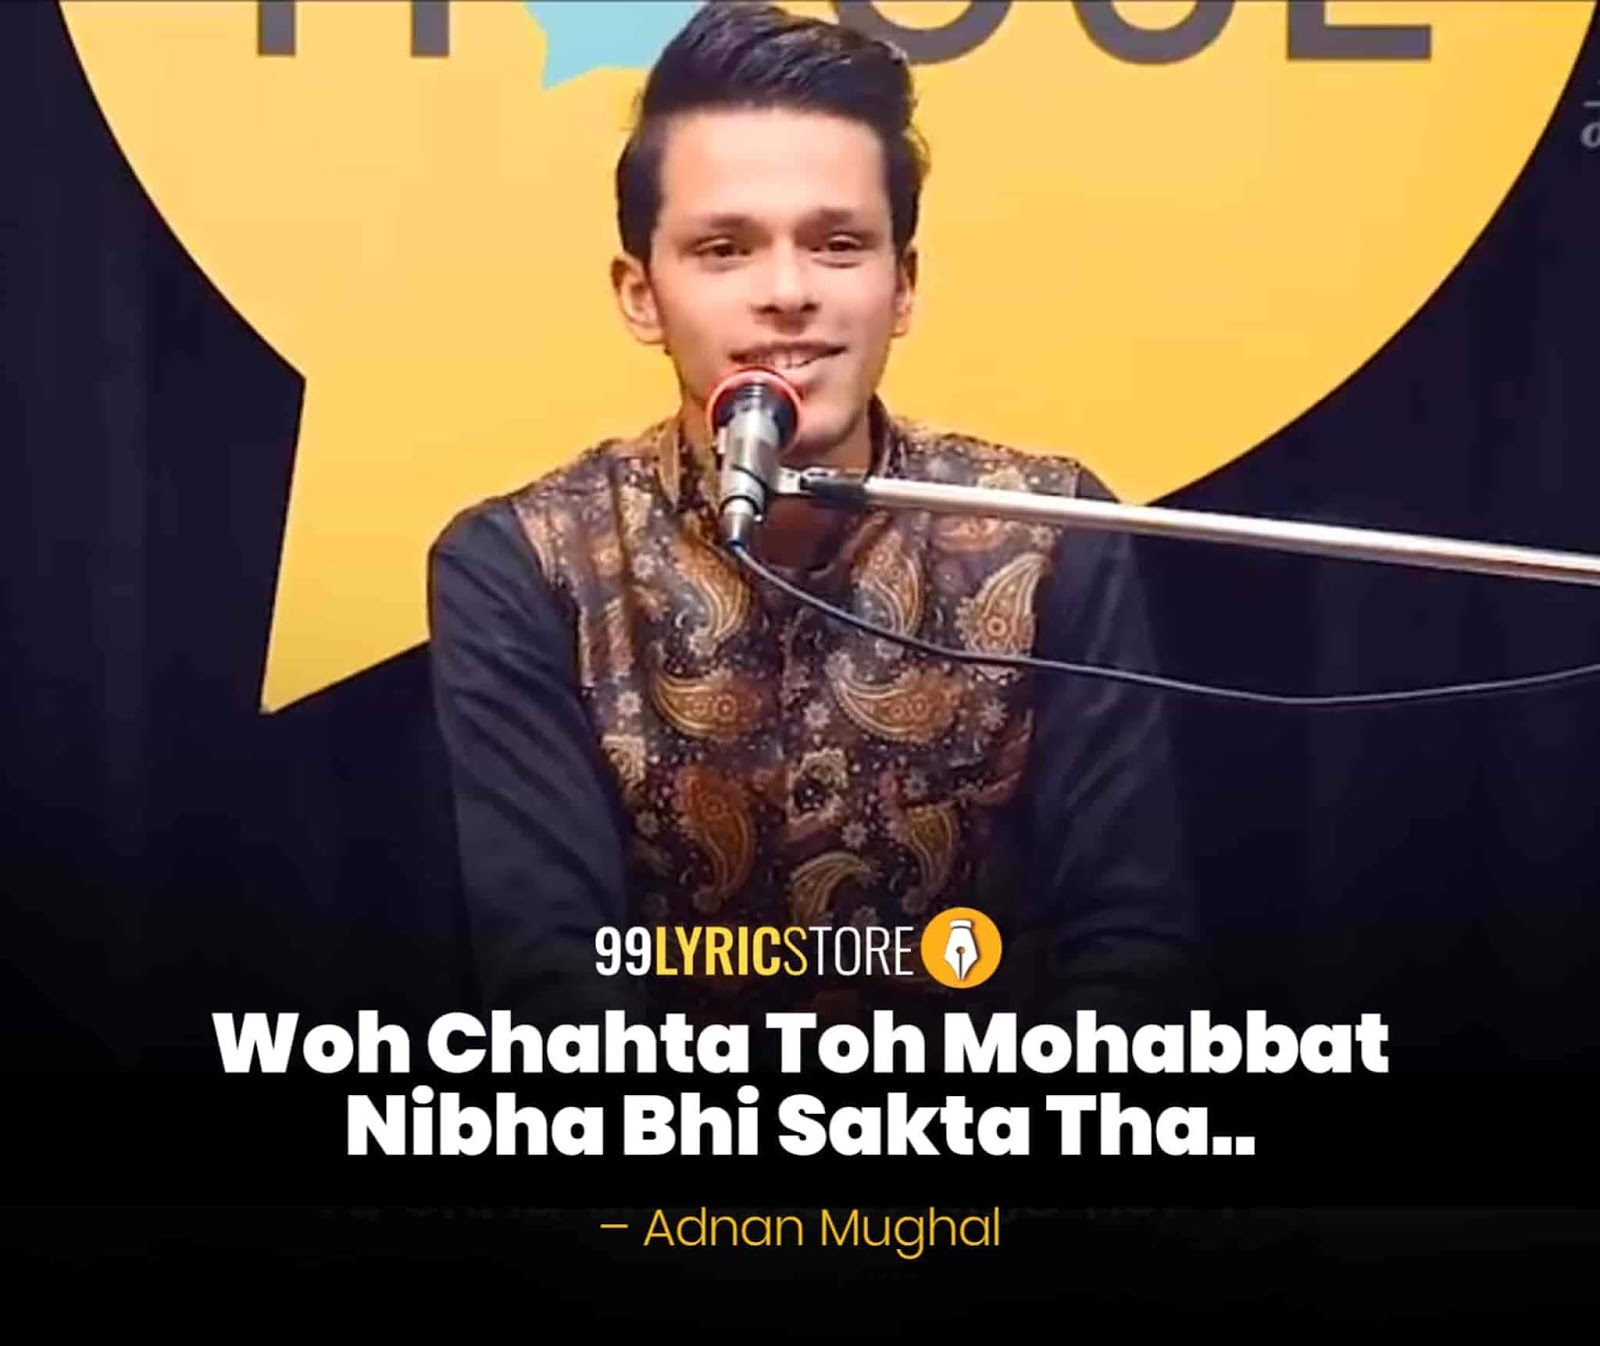 About This Poetry :- This beautiful Proposal Poem  'Woh Chahta Toh Mohabbat Nibha Bhi Sakta Tha' for The Social House is performed by Adnan Mughal and also written by him which is very beautiful a piece.